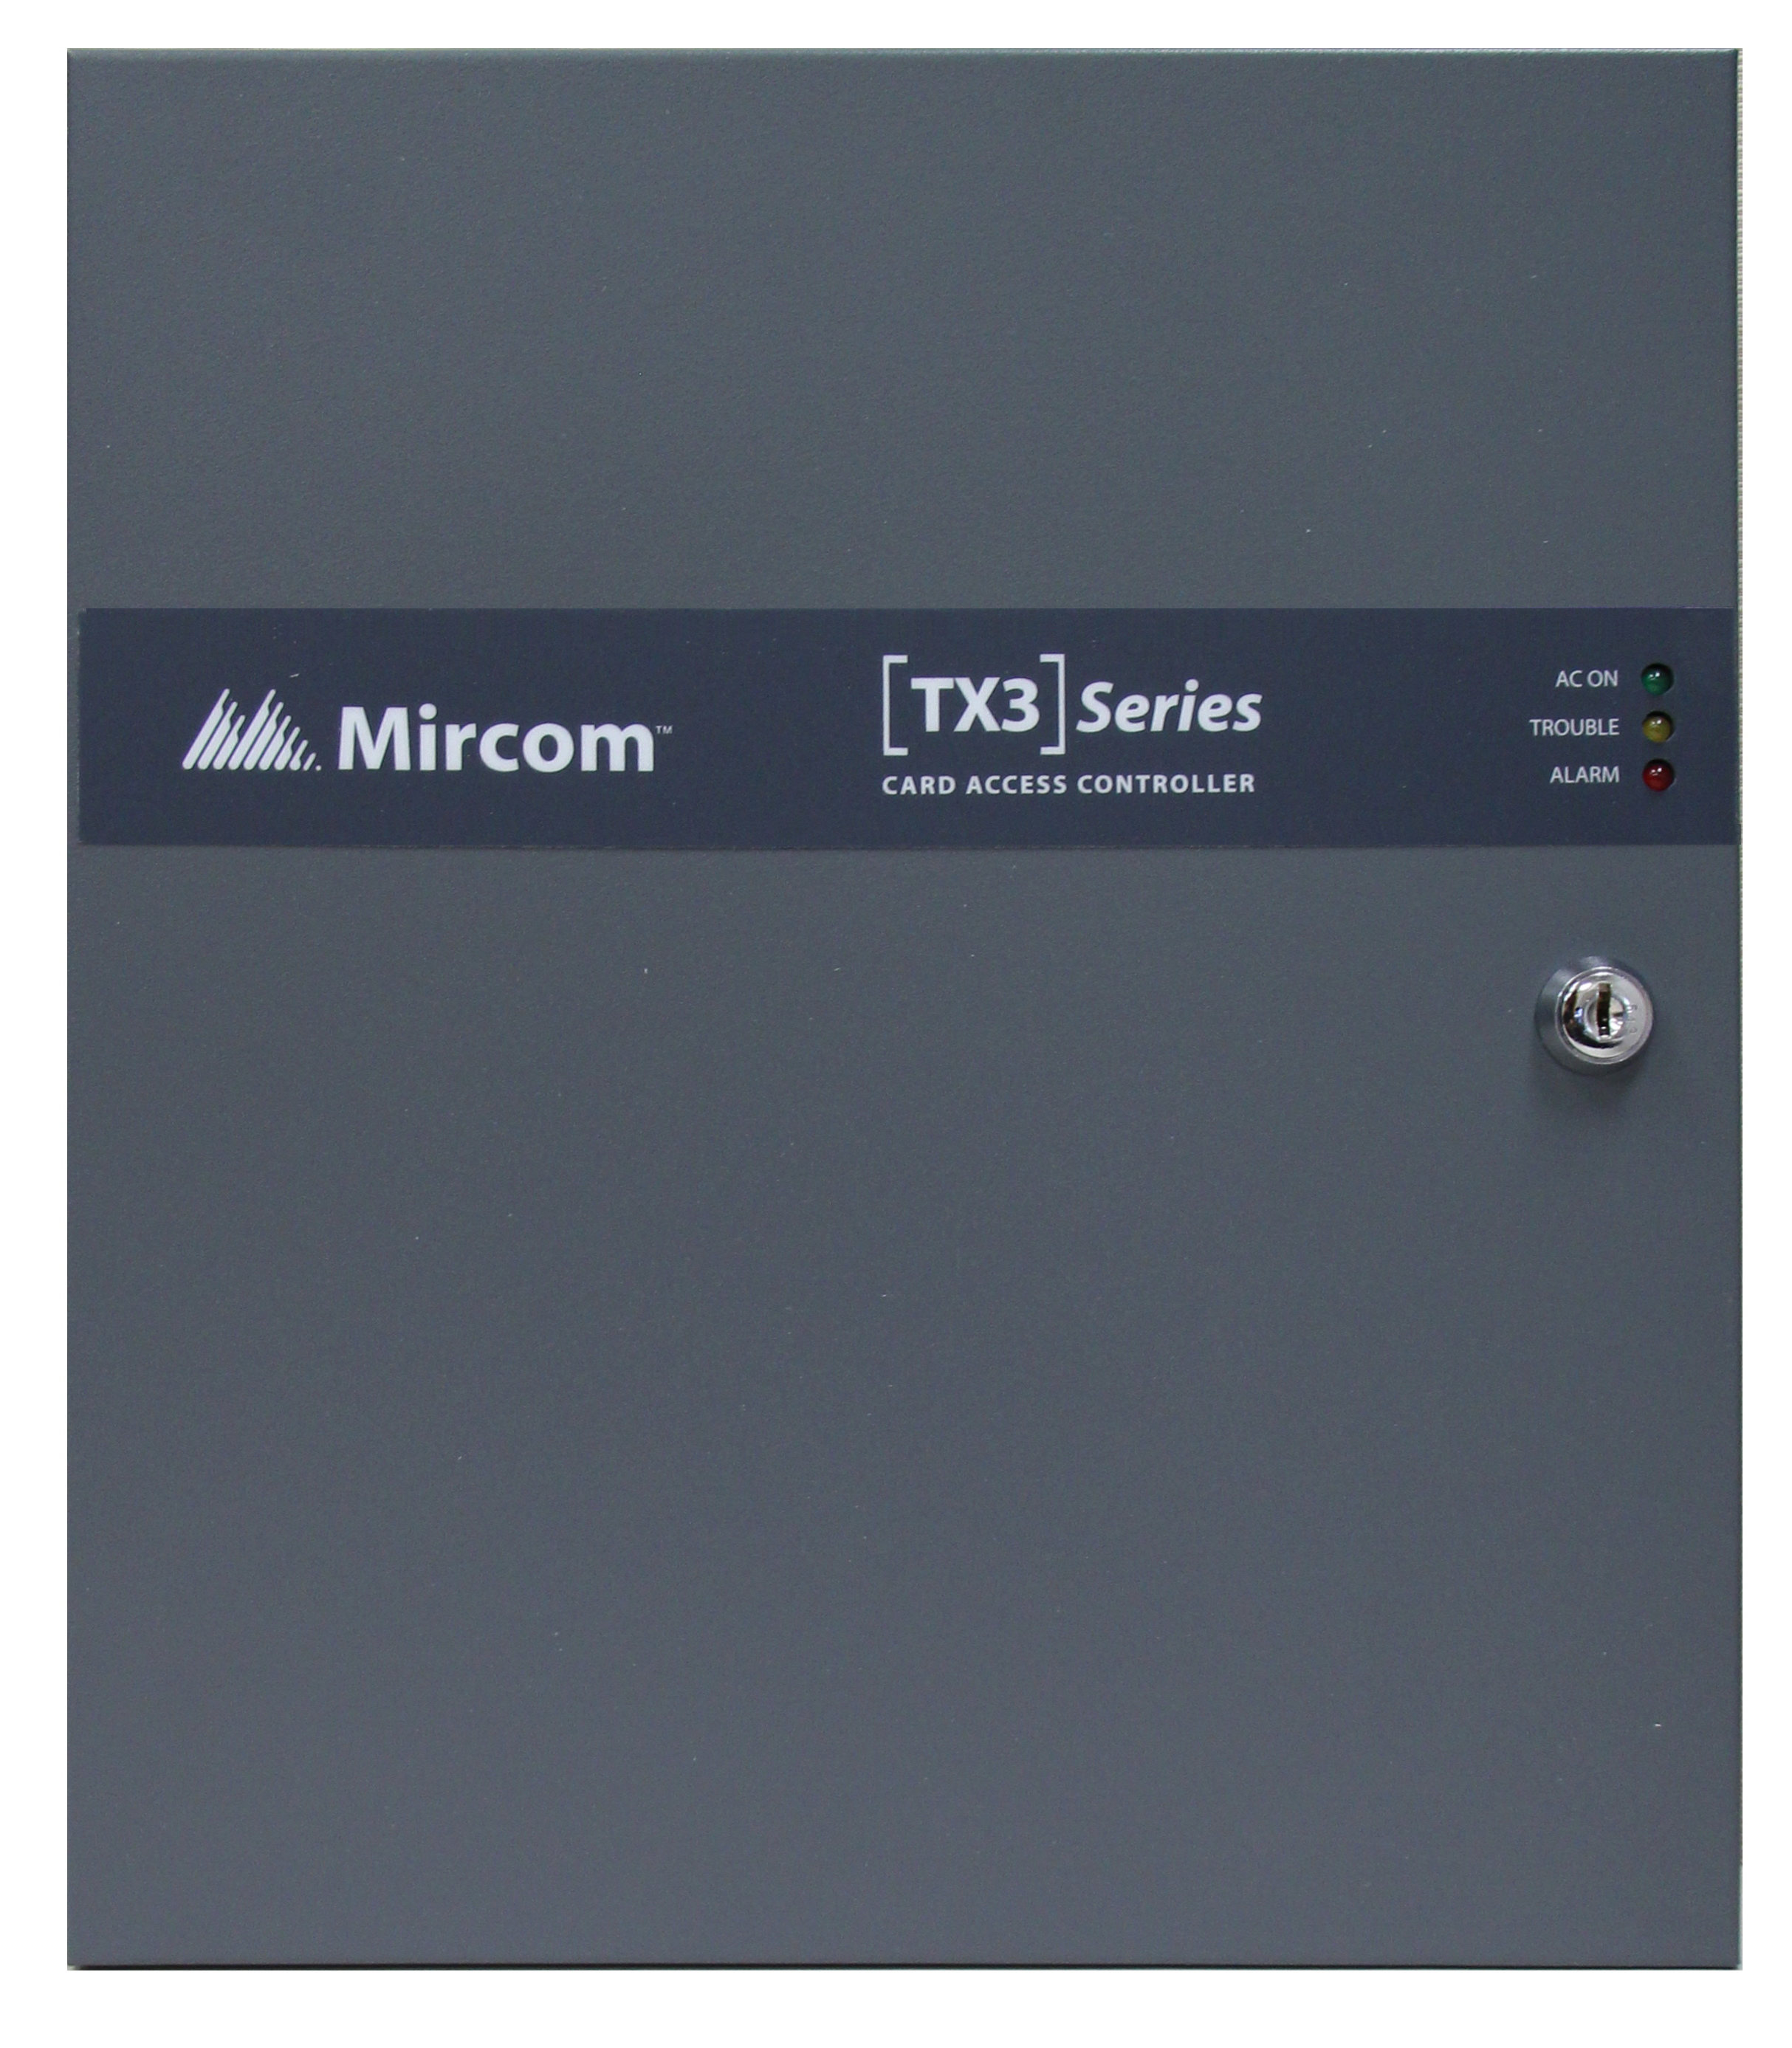 TX3-CX-8-A MIRCOM EIGHT DOOR CONTROLLER PANEL ************************* SPECIAL ORDER ITEM NO RETURNS OR SUBJECT TO RESTOCK FEE *************************